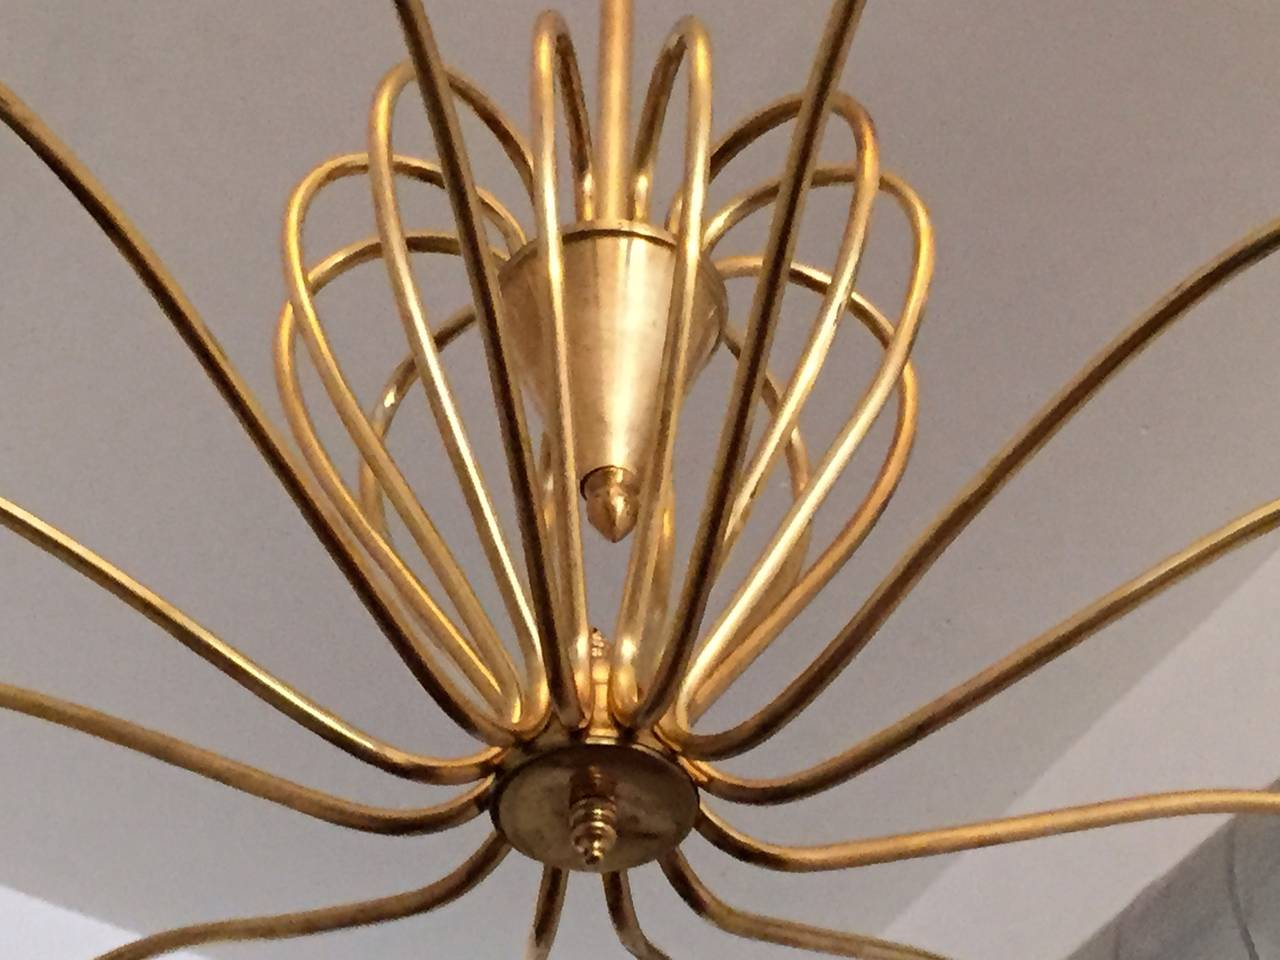 Italian 1950s Chandelier In Excellent Condition For Sale In New York, NY